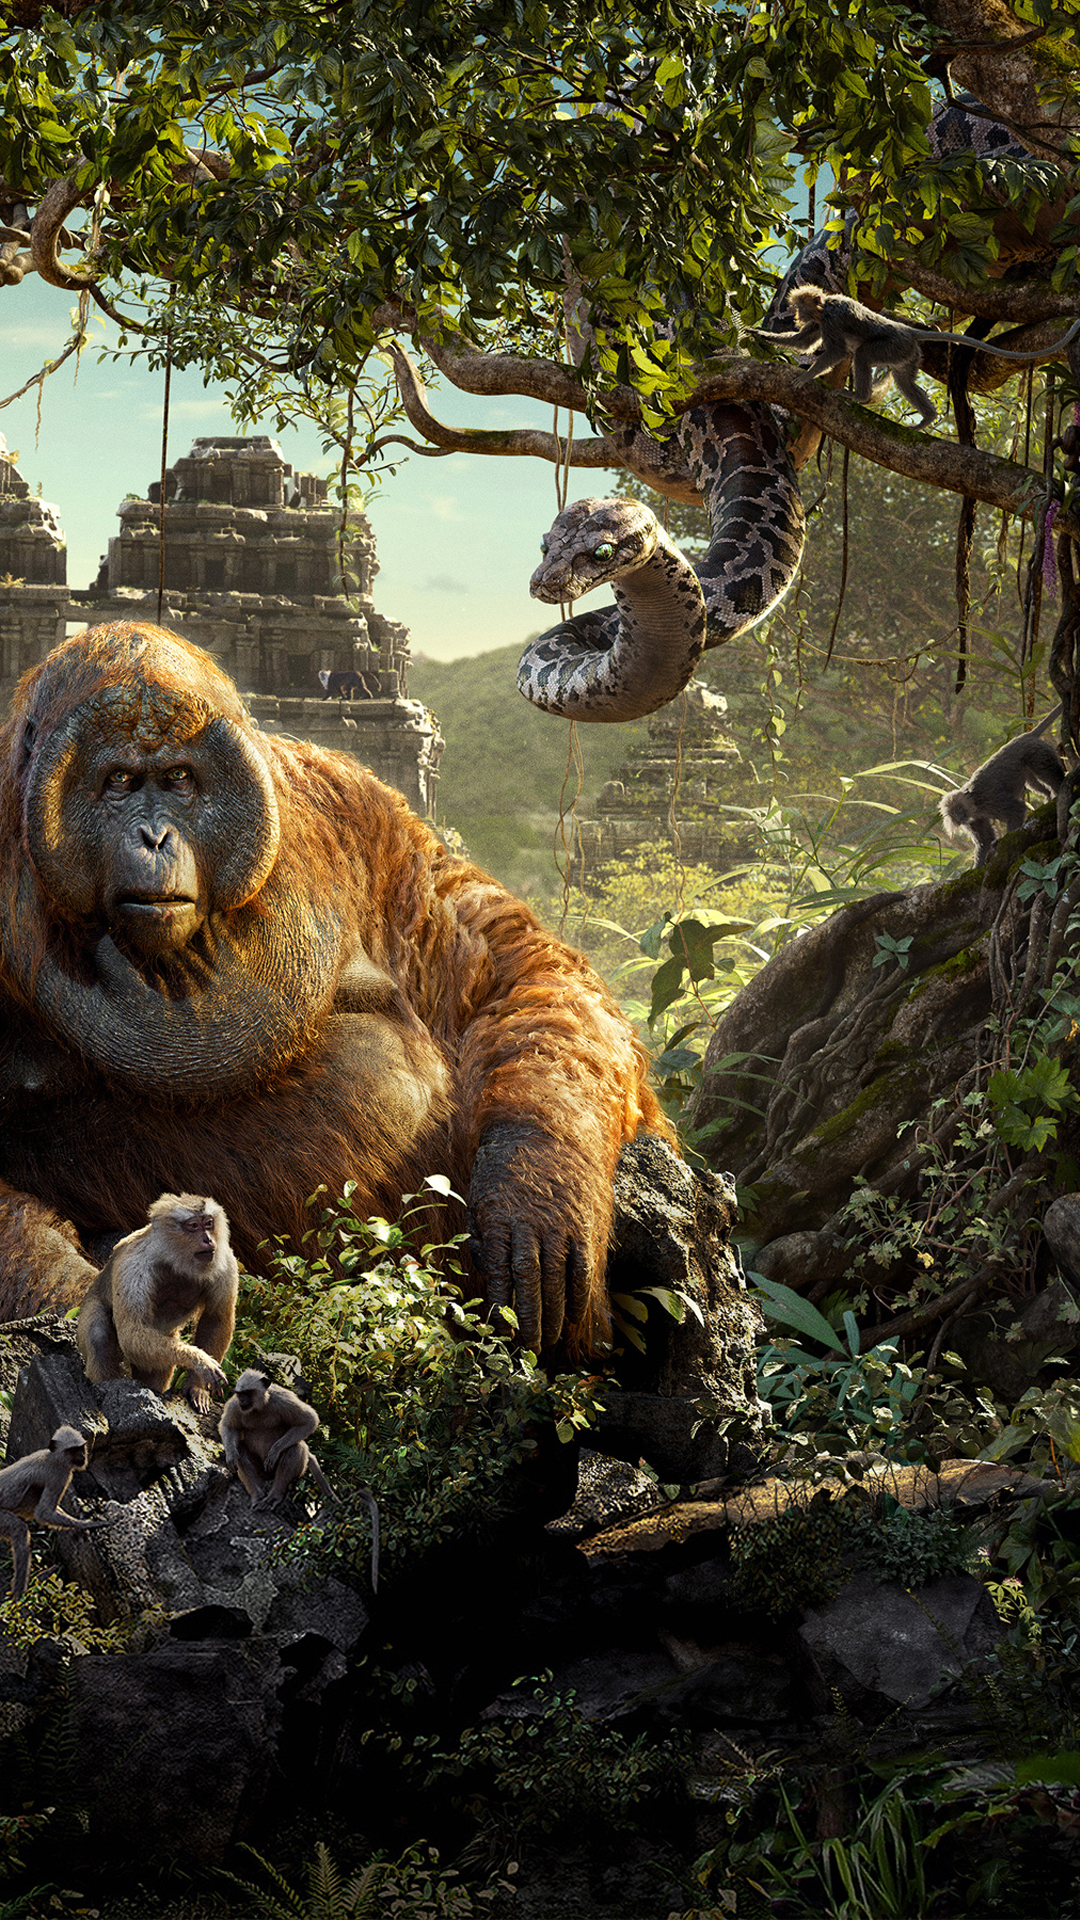 The Jungle Book 2016 Movie Wallpapers for iPhone - Apple Lives